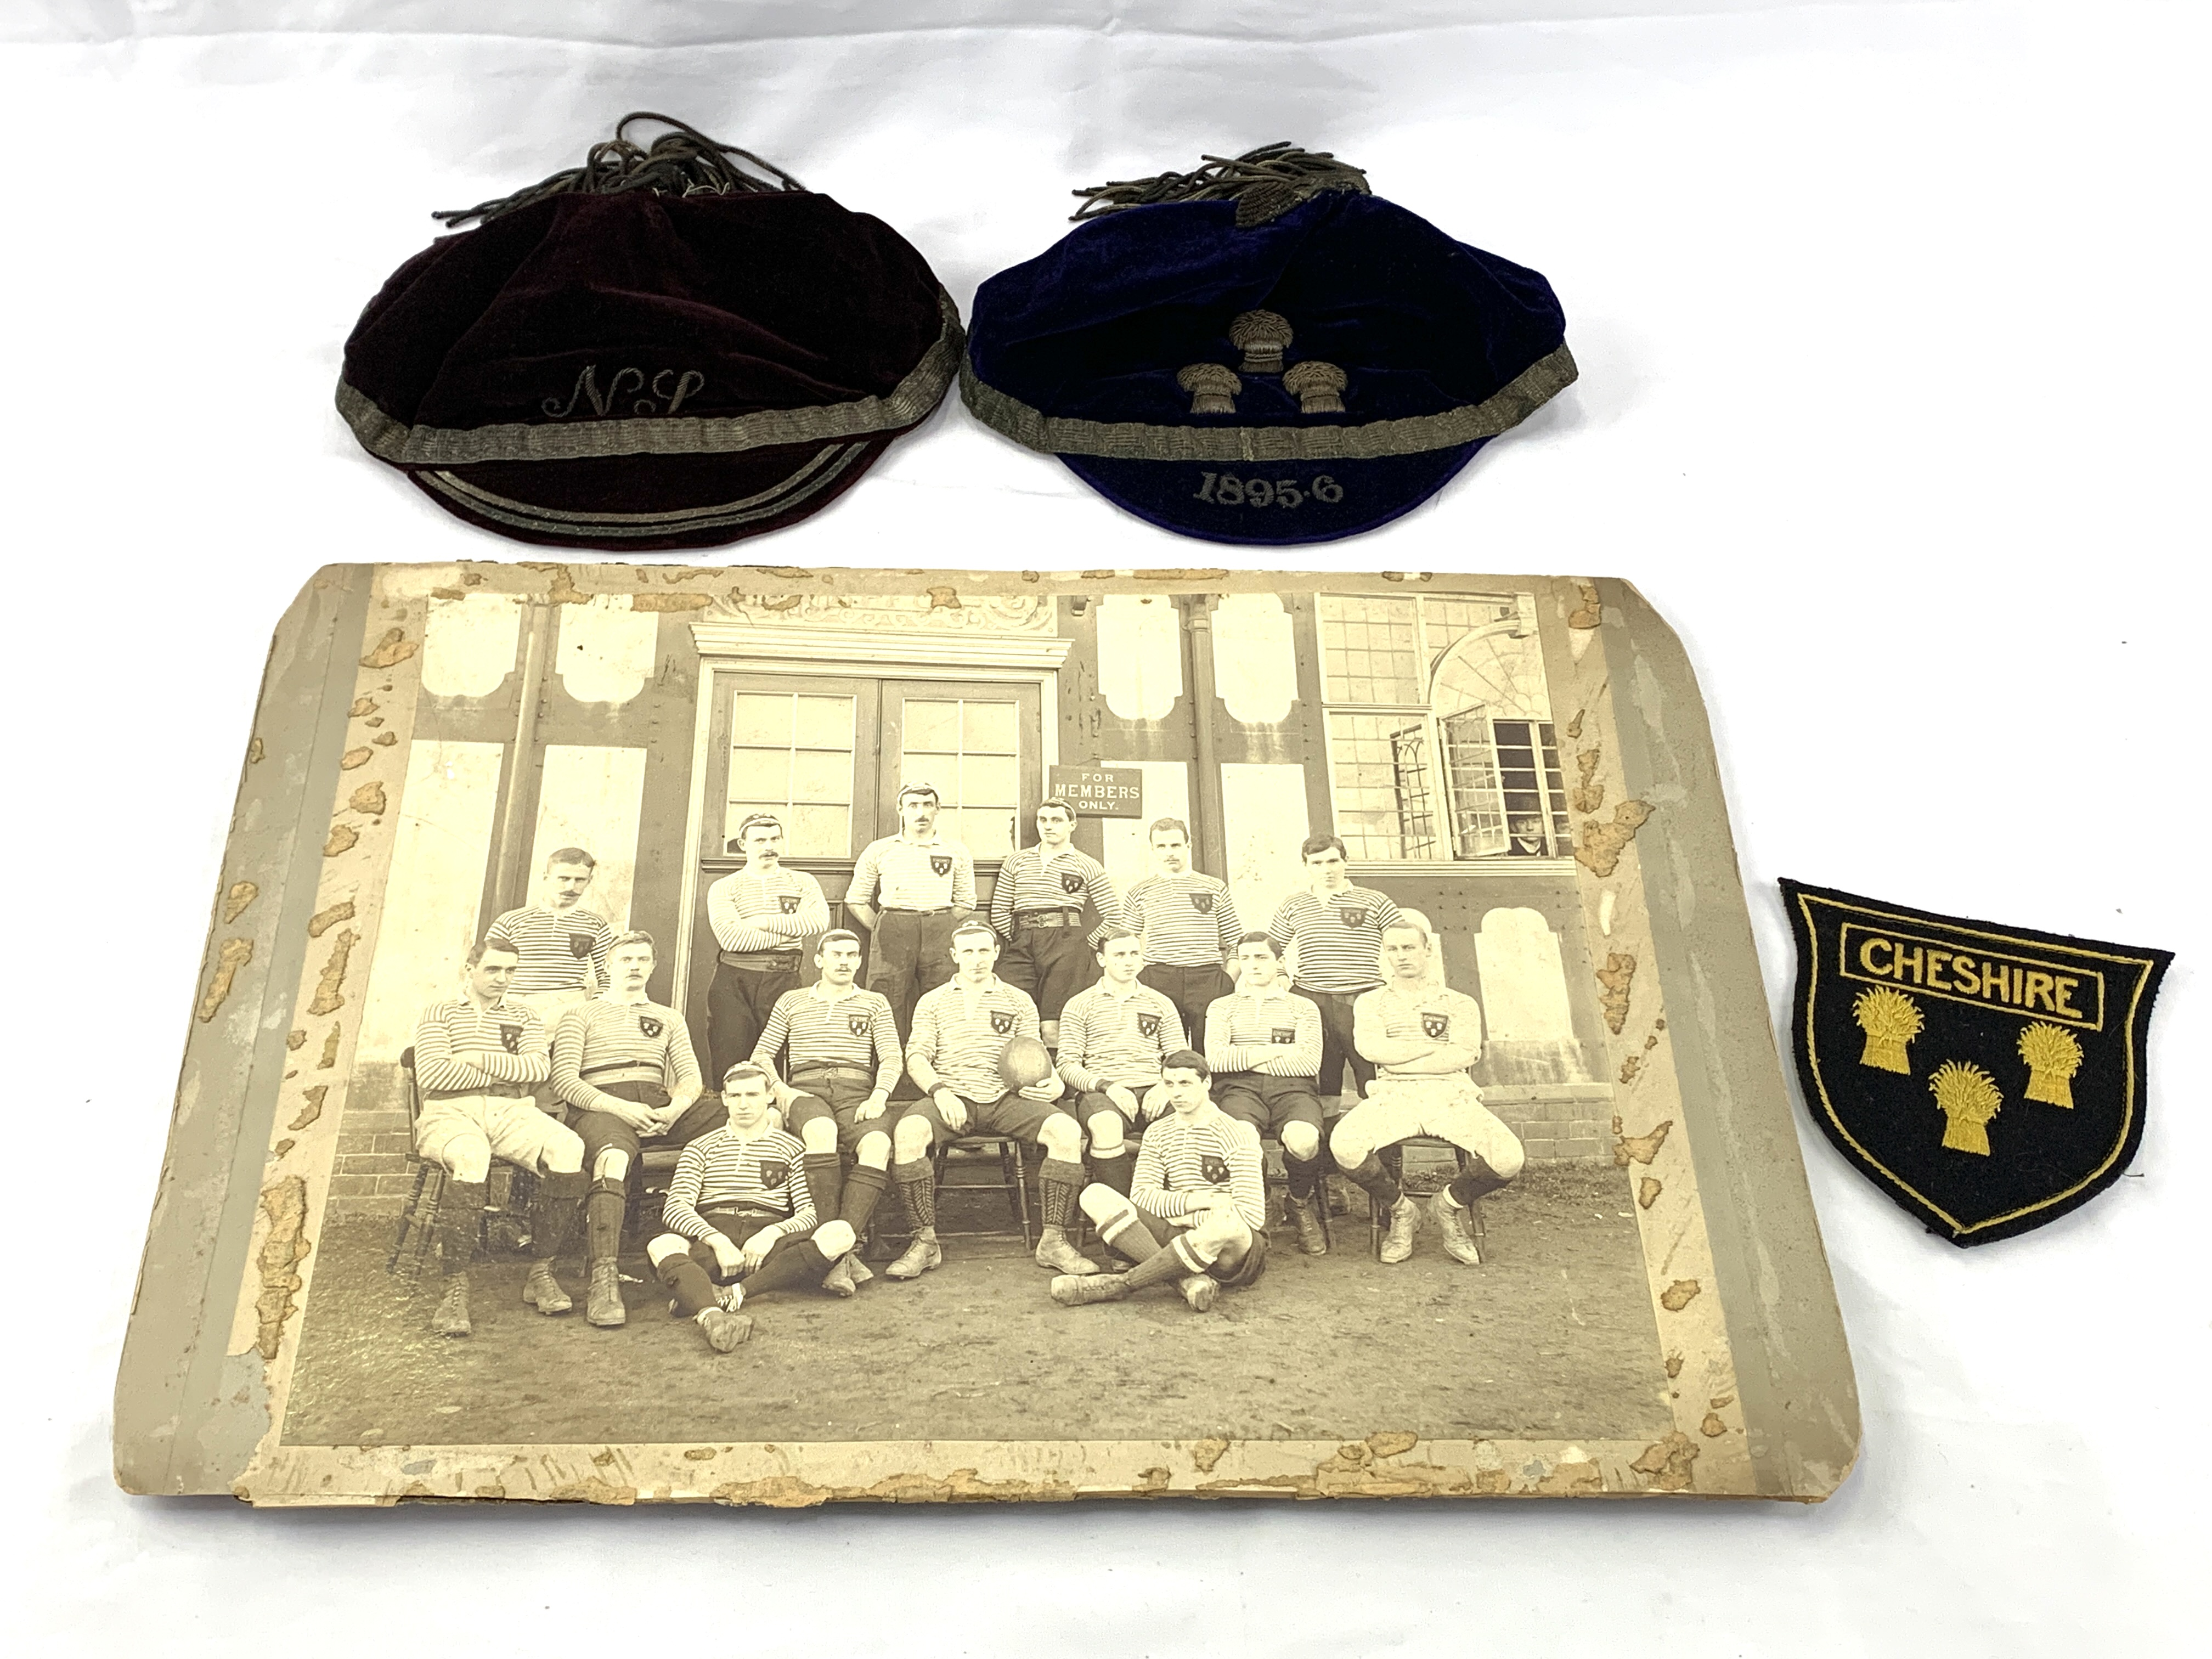 Black and white photograph of a Cheshire Rugby team circa 1895, a shirt badge and 2 velvet caps